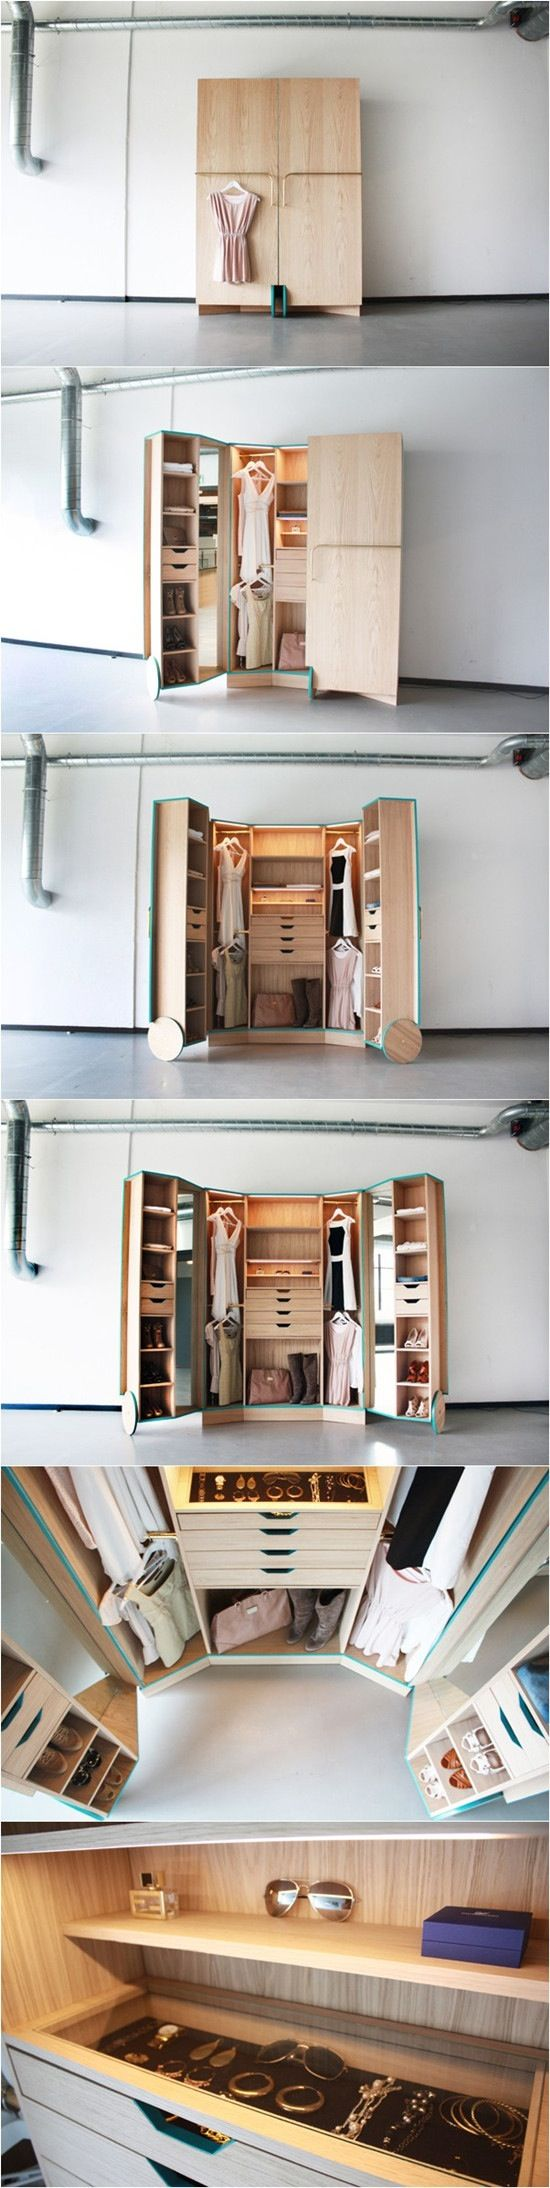 I don't have enough clothing or space in my room to justify one of these, but I certainly admire the design. More